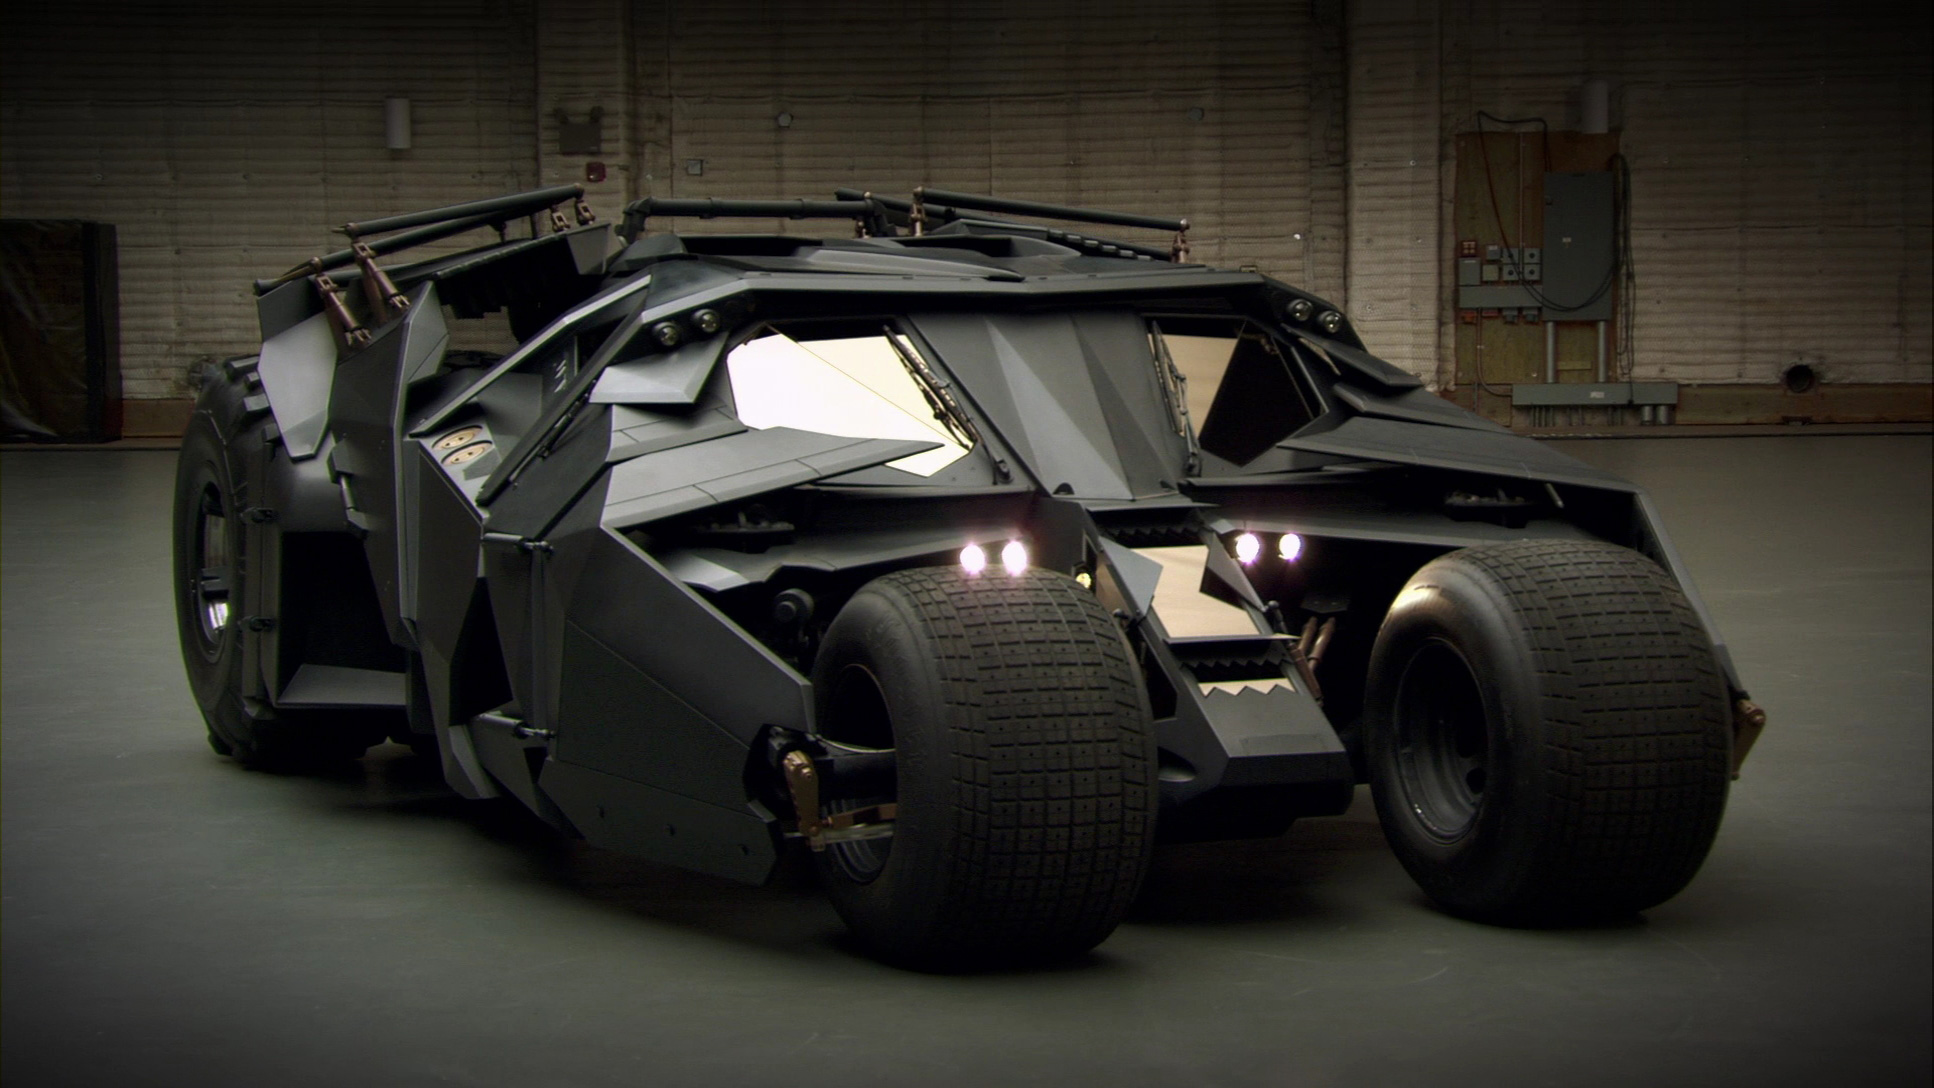 DarkKnight_Tumbler_4WheelParts